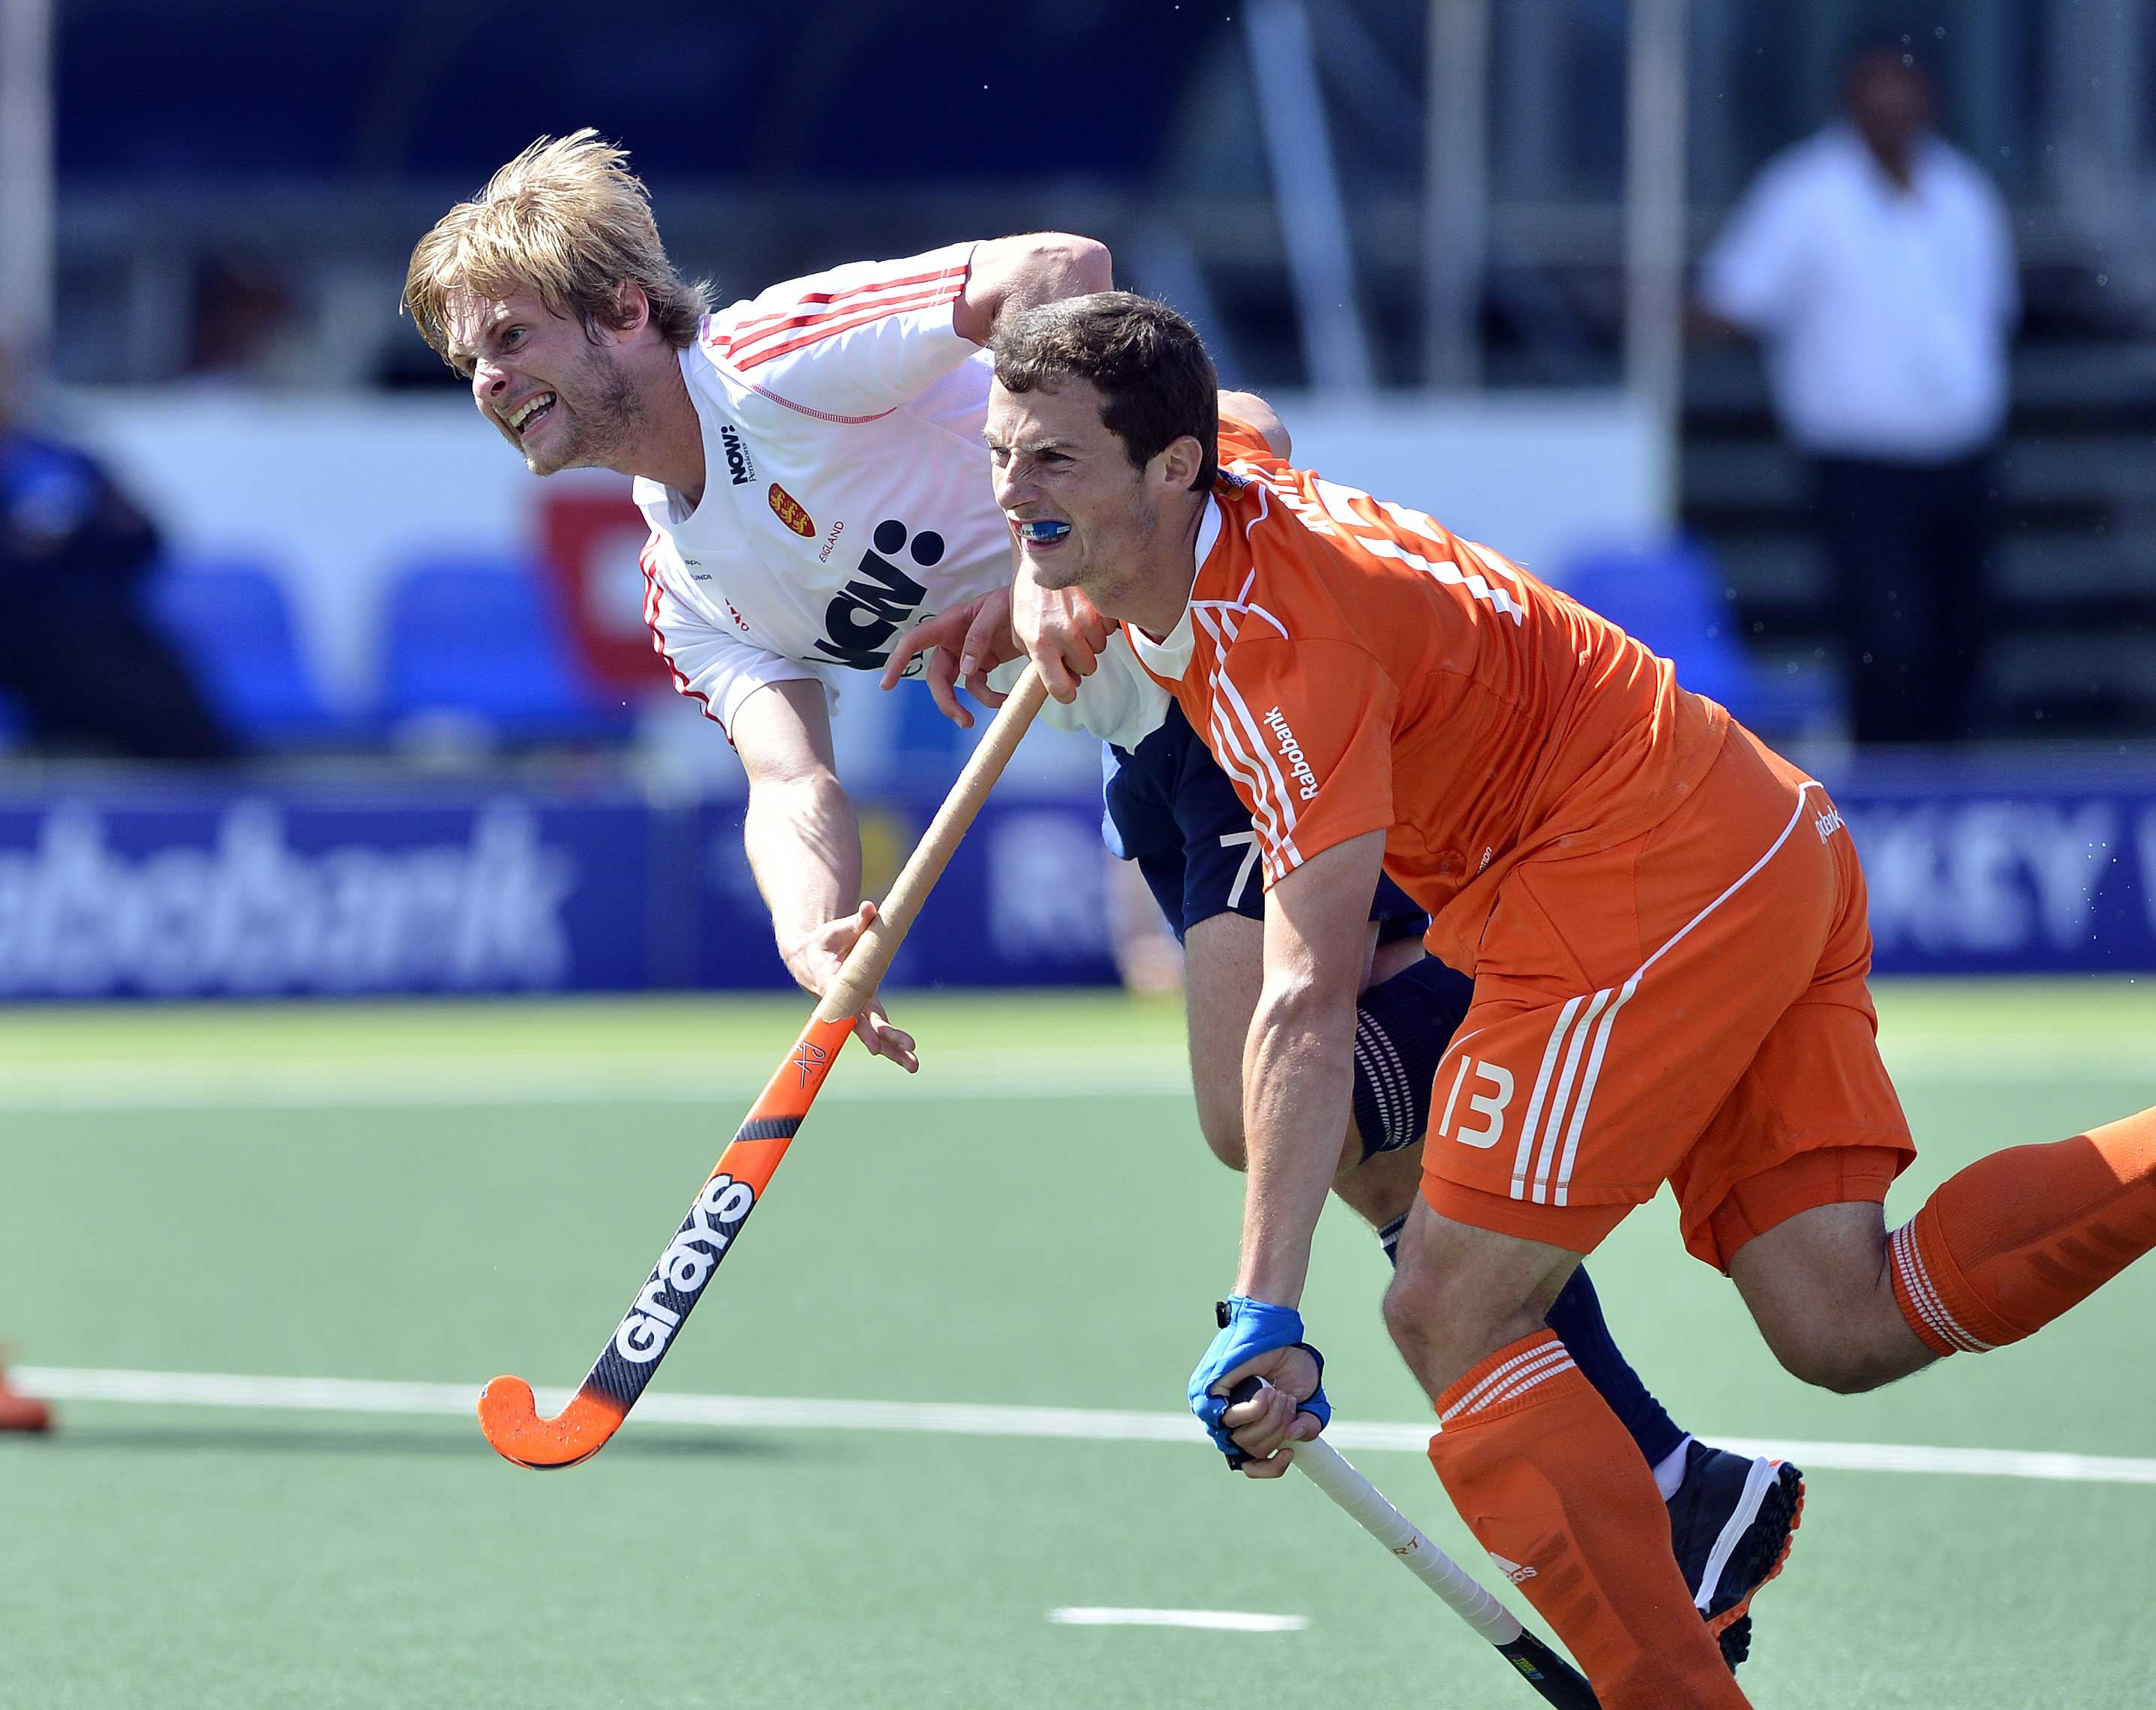 Ashley Jackson (l) and Sander Baart in Friday's World Cup semi-final (c) hockeyimages.co.uk